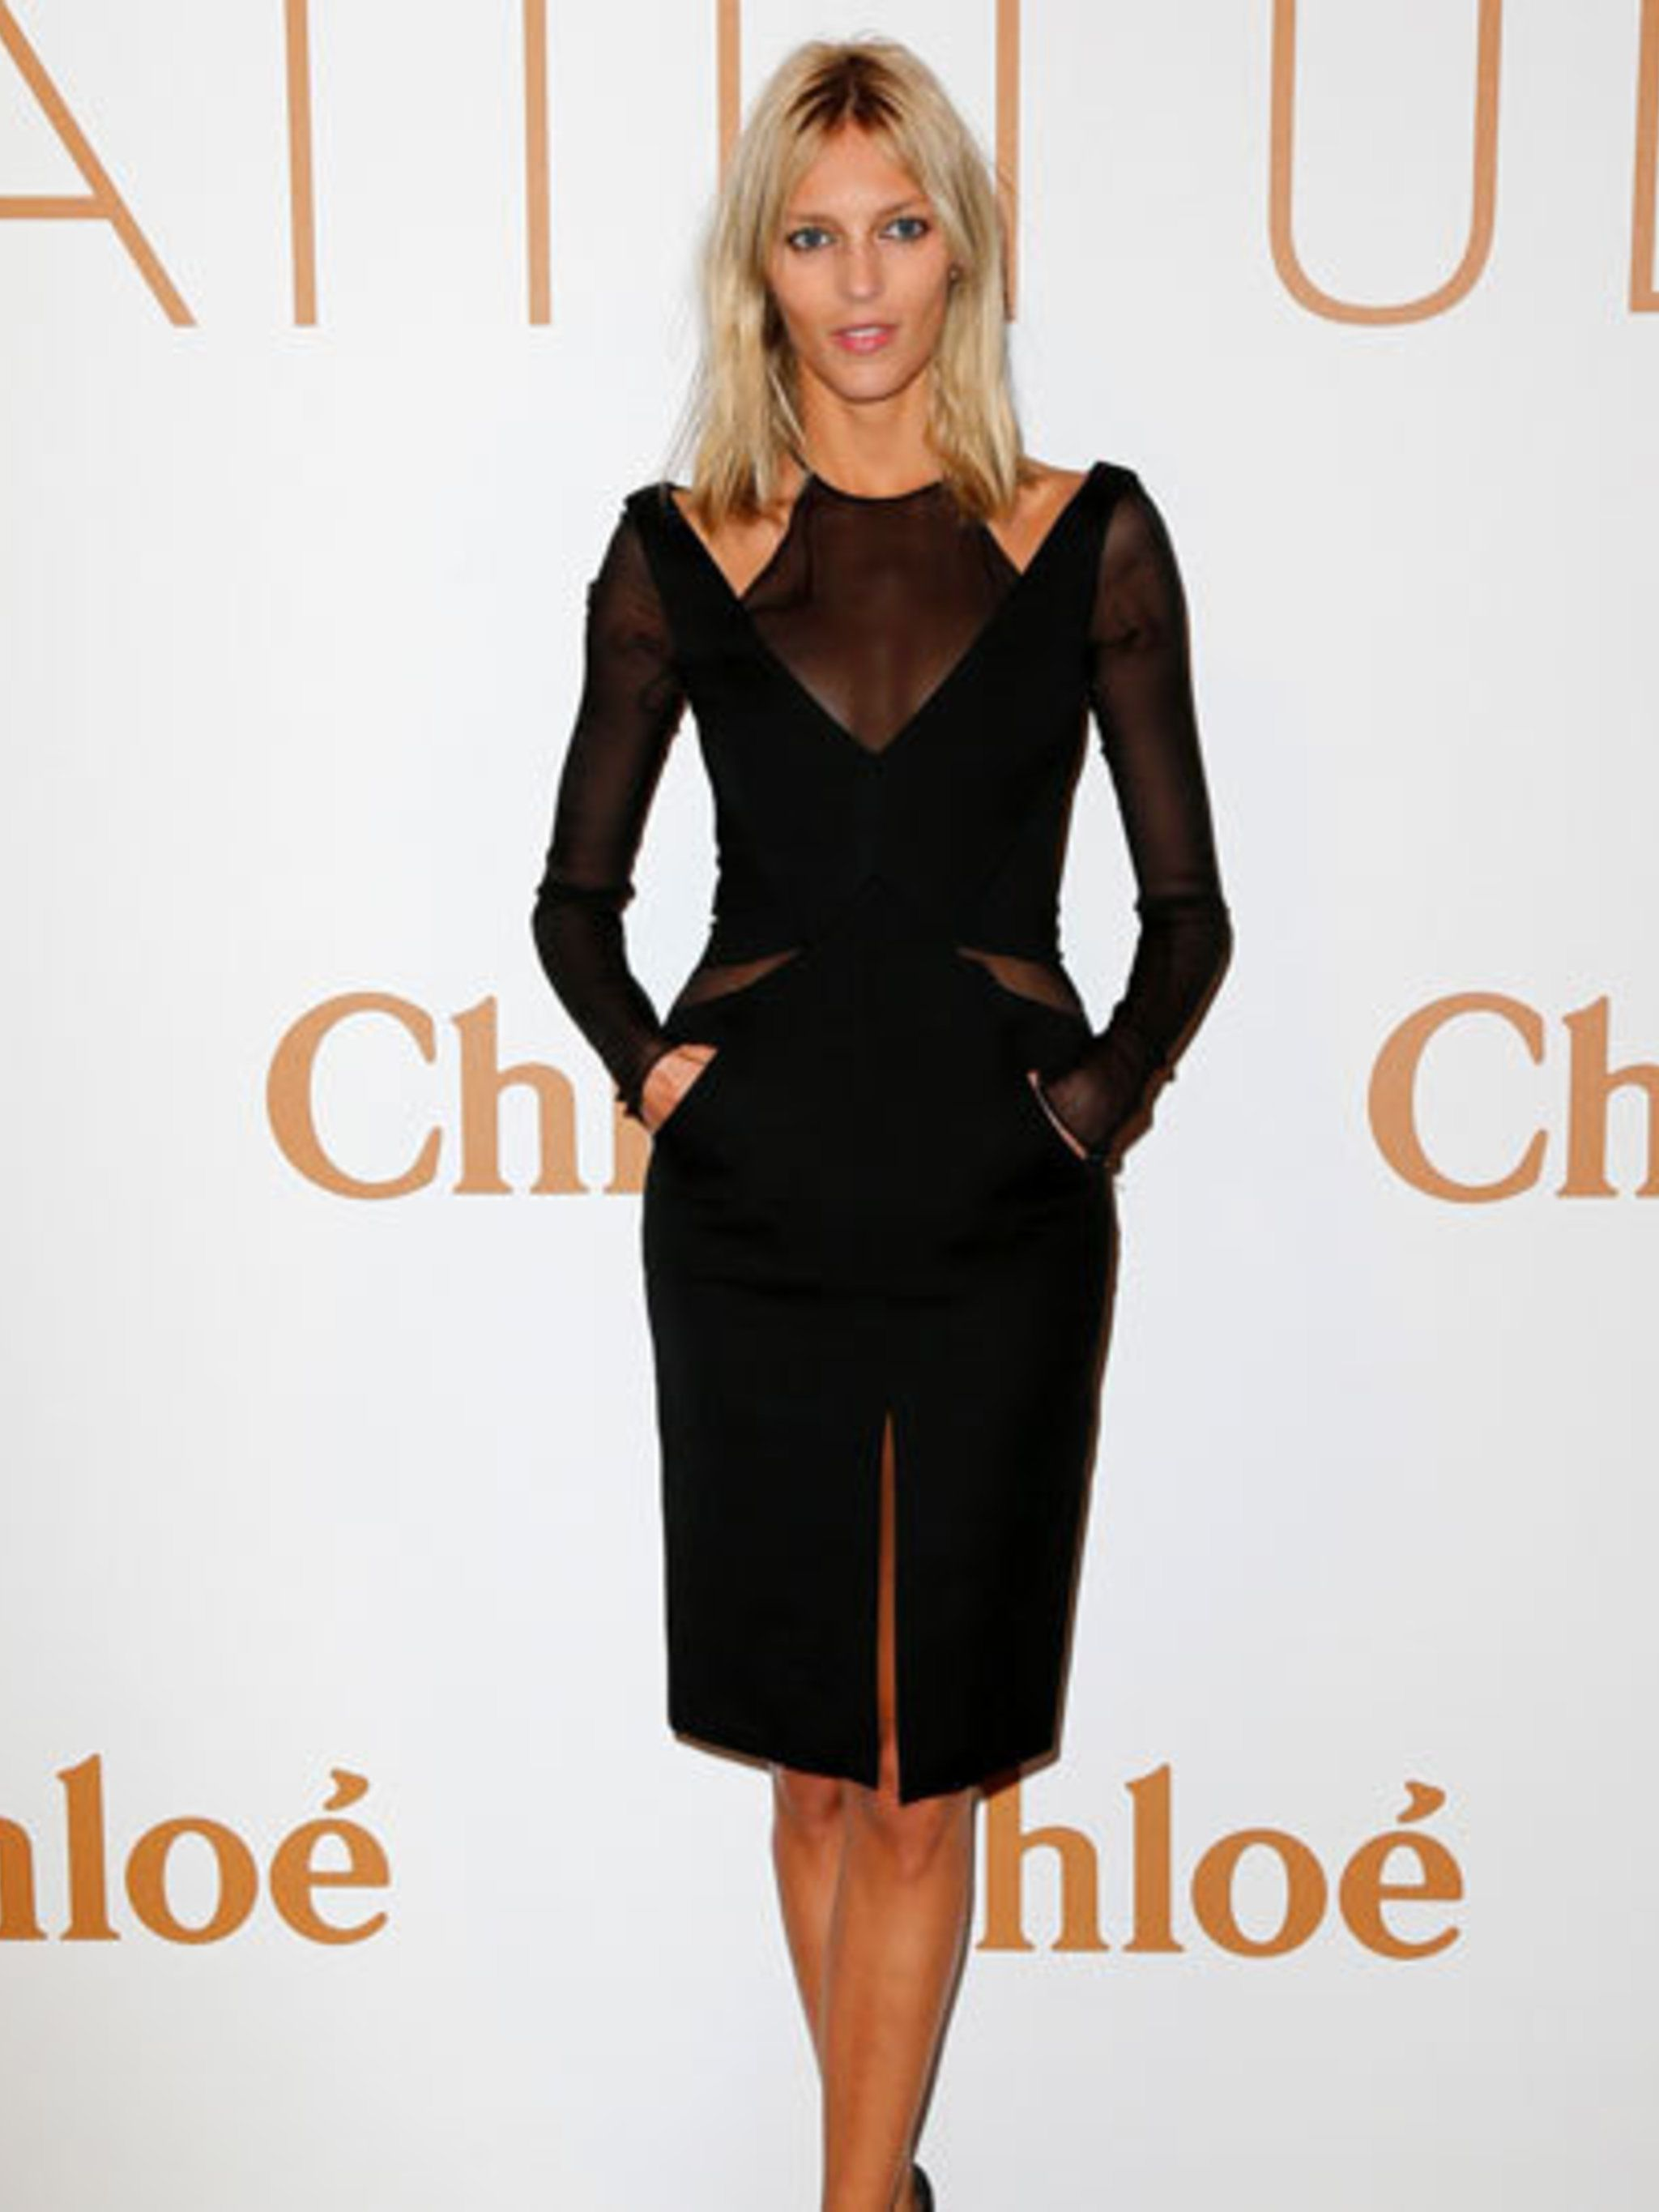 "<p><a href=""http://www.elleuk.com/style/occasions/models-off-duty"">Anja Rubik</a> at Chloé's 60th anniversary party at the Palais de Tokyo in Paris</p>"